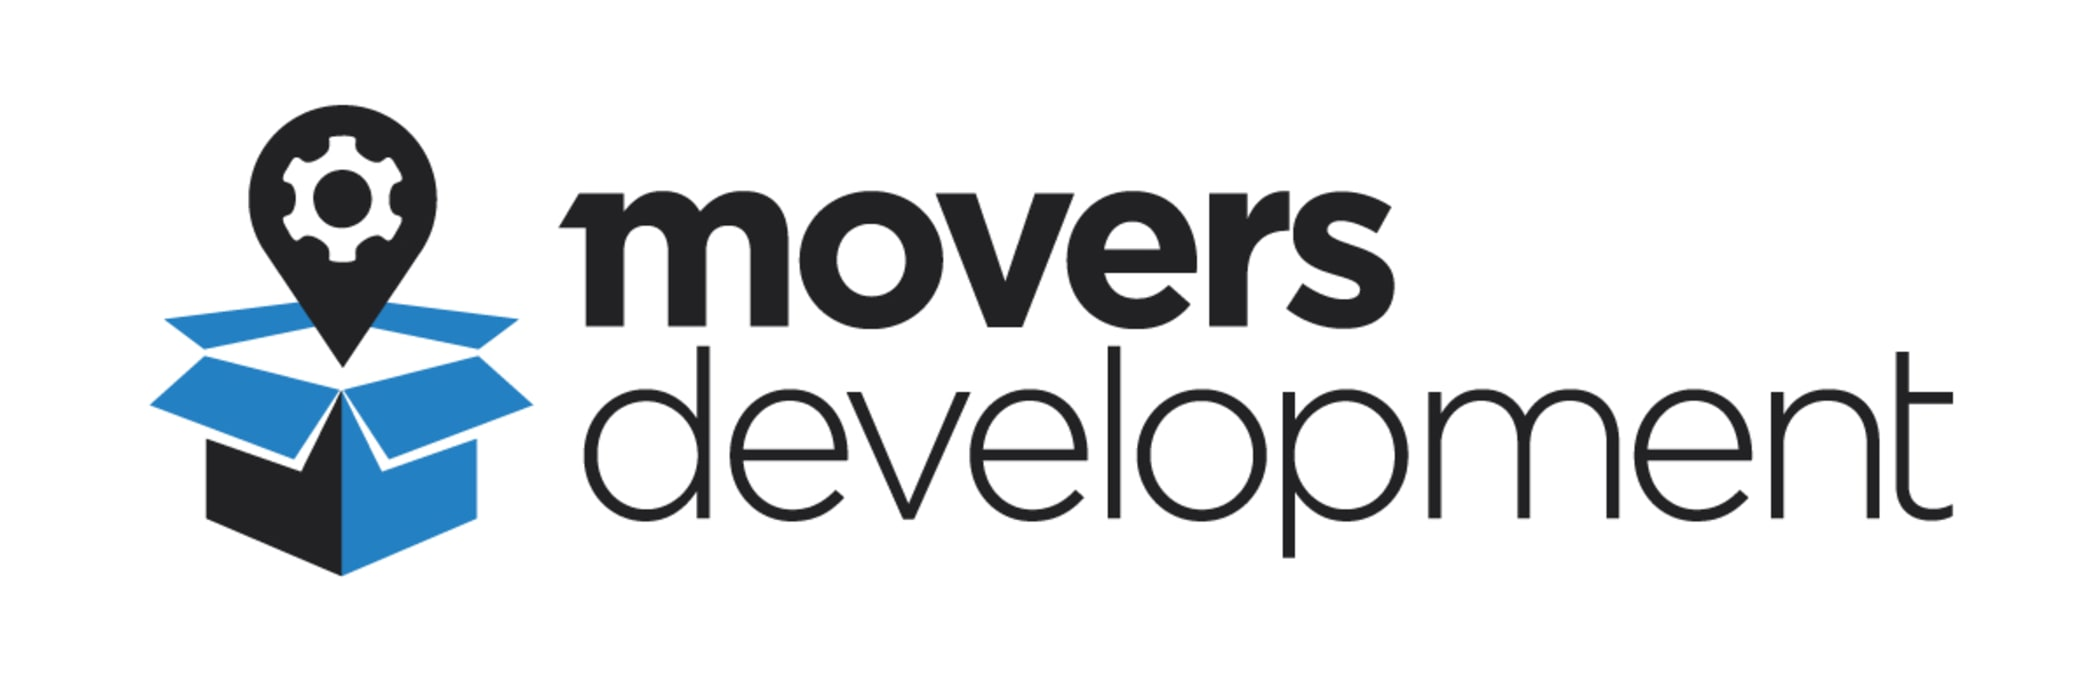 movers marketing Movers Development 溫室